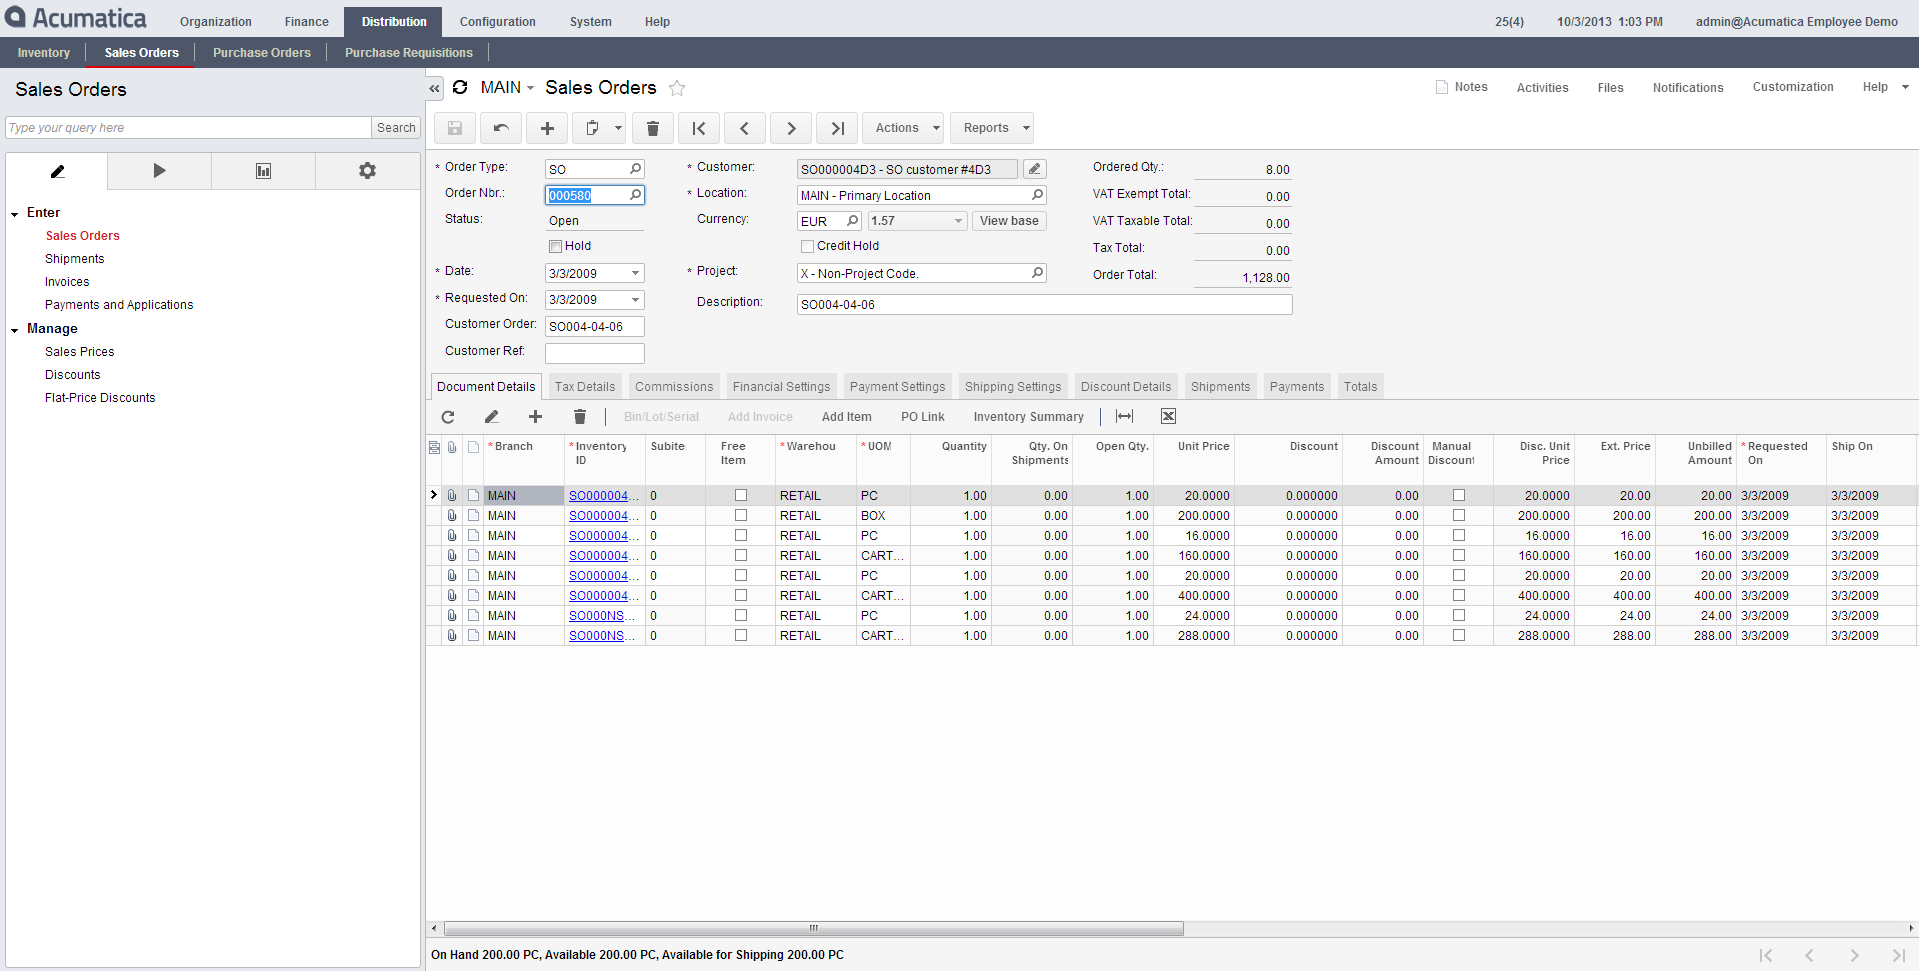 a clear screenshot of the acumtica order management software system